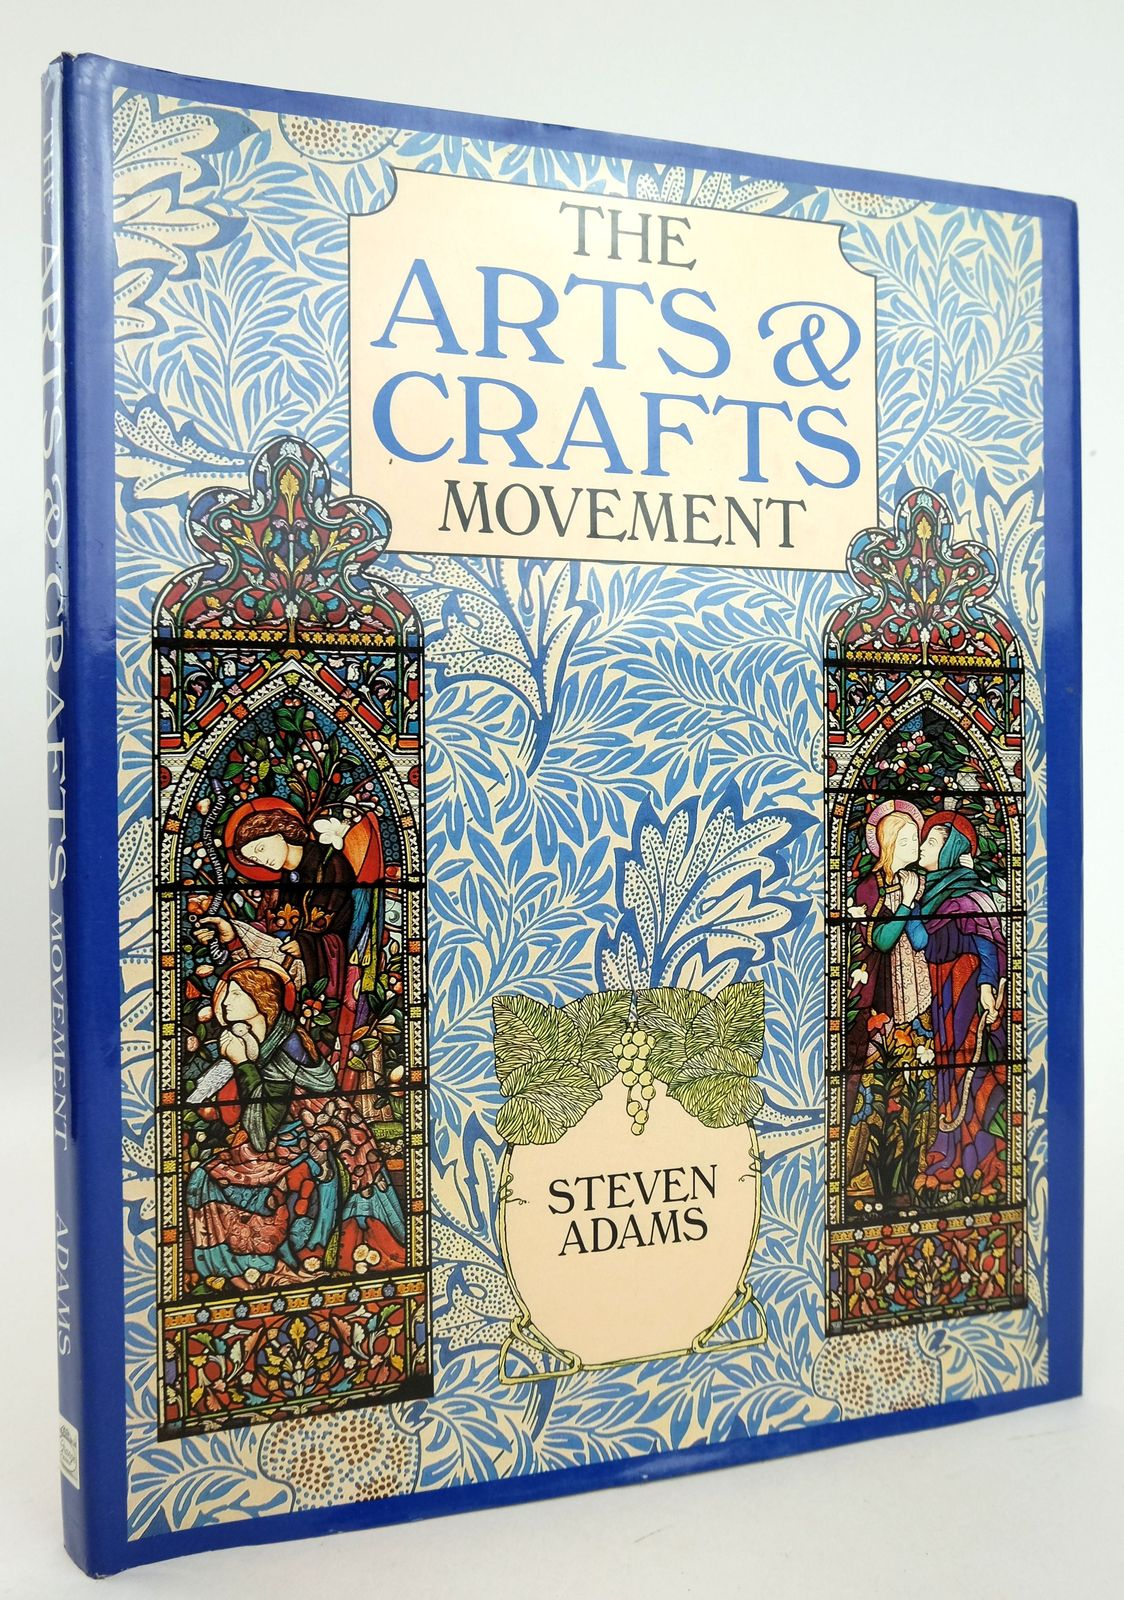 Photo of THE ARTS & CRAFTS MOVEMENT- Stock Number: 1819381